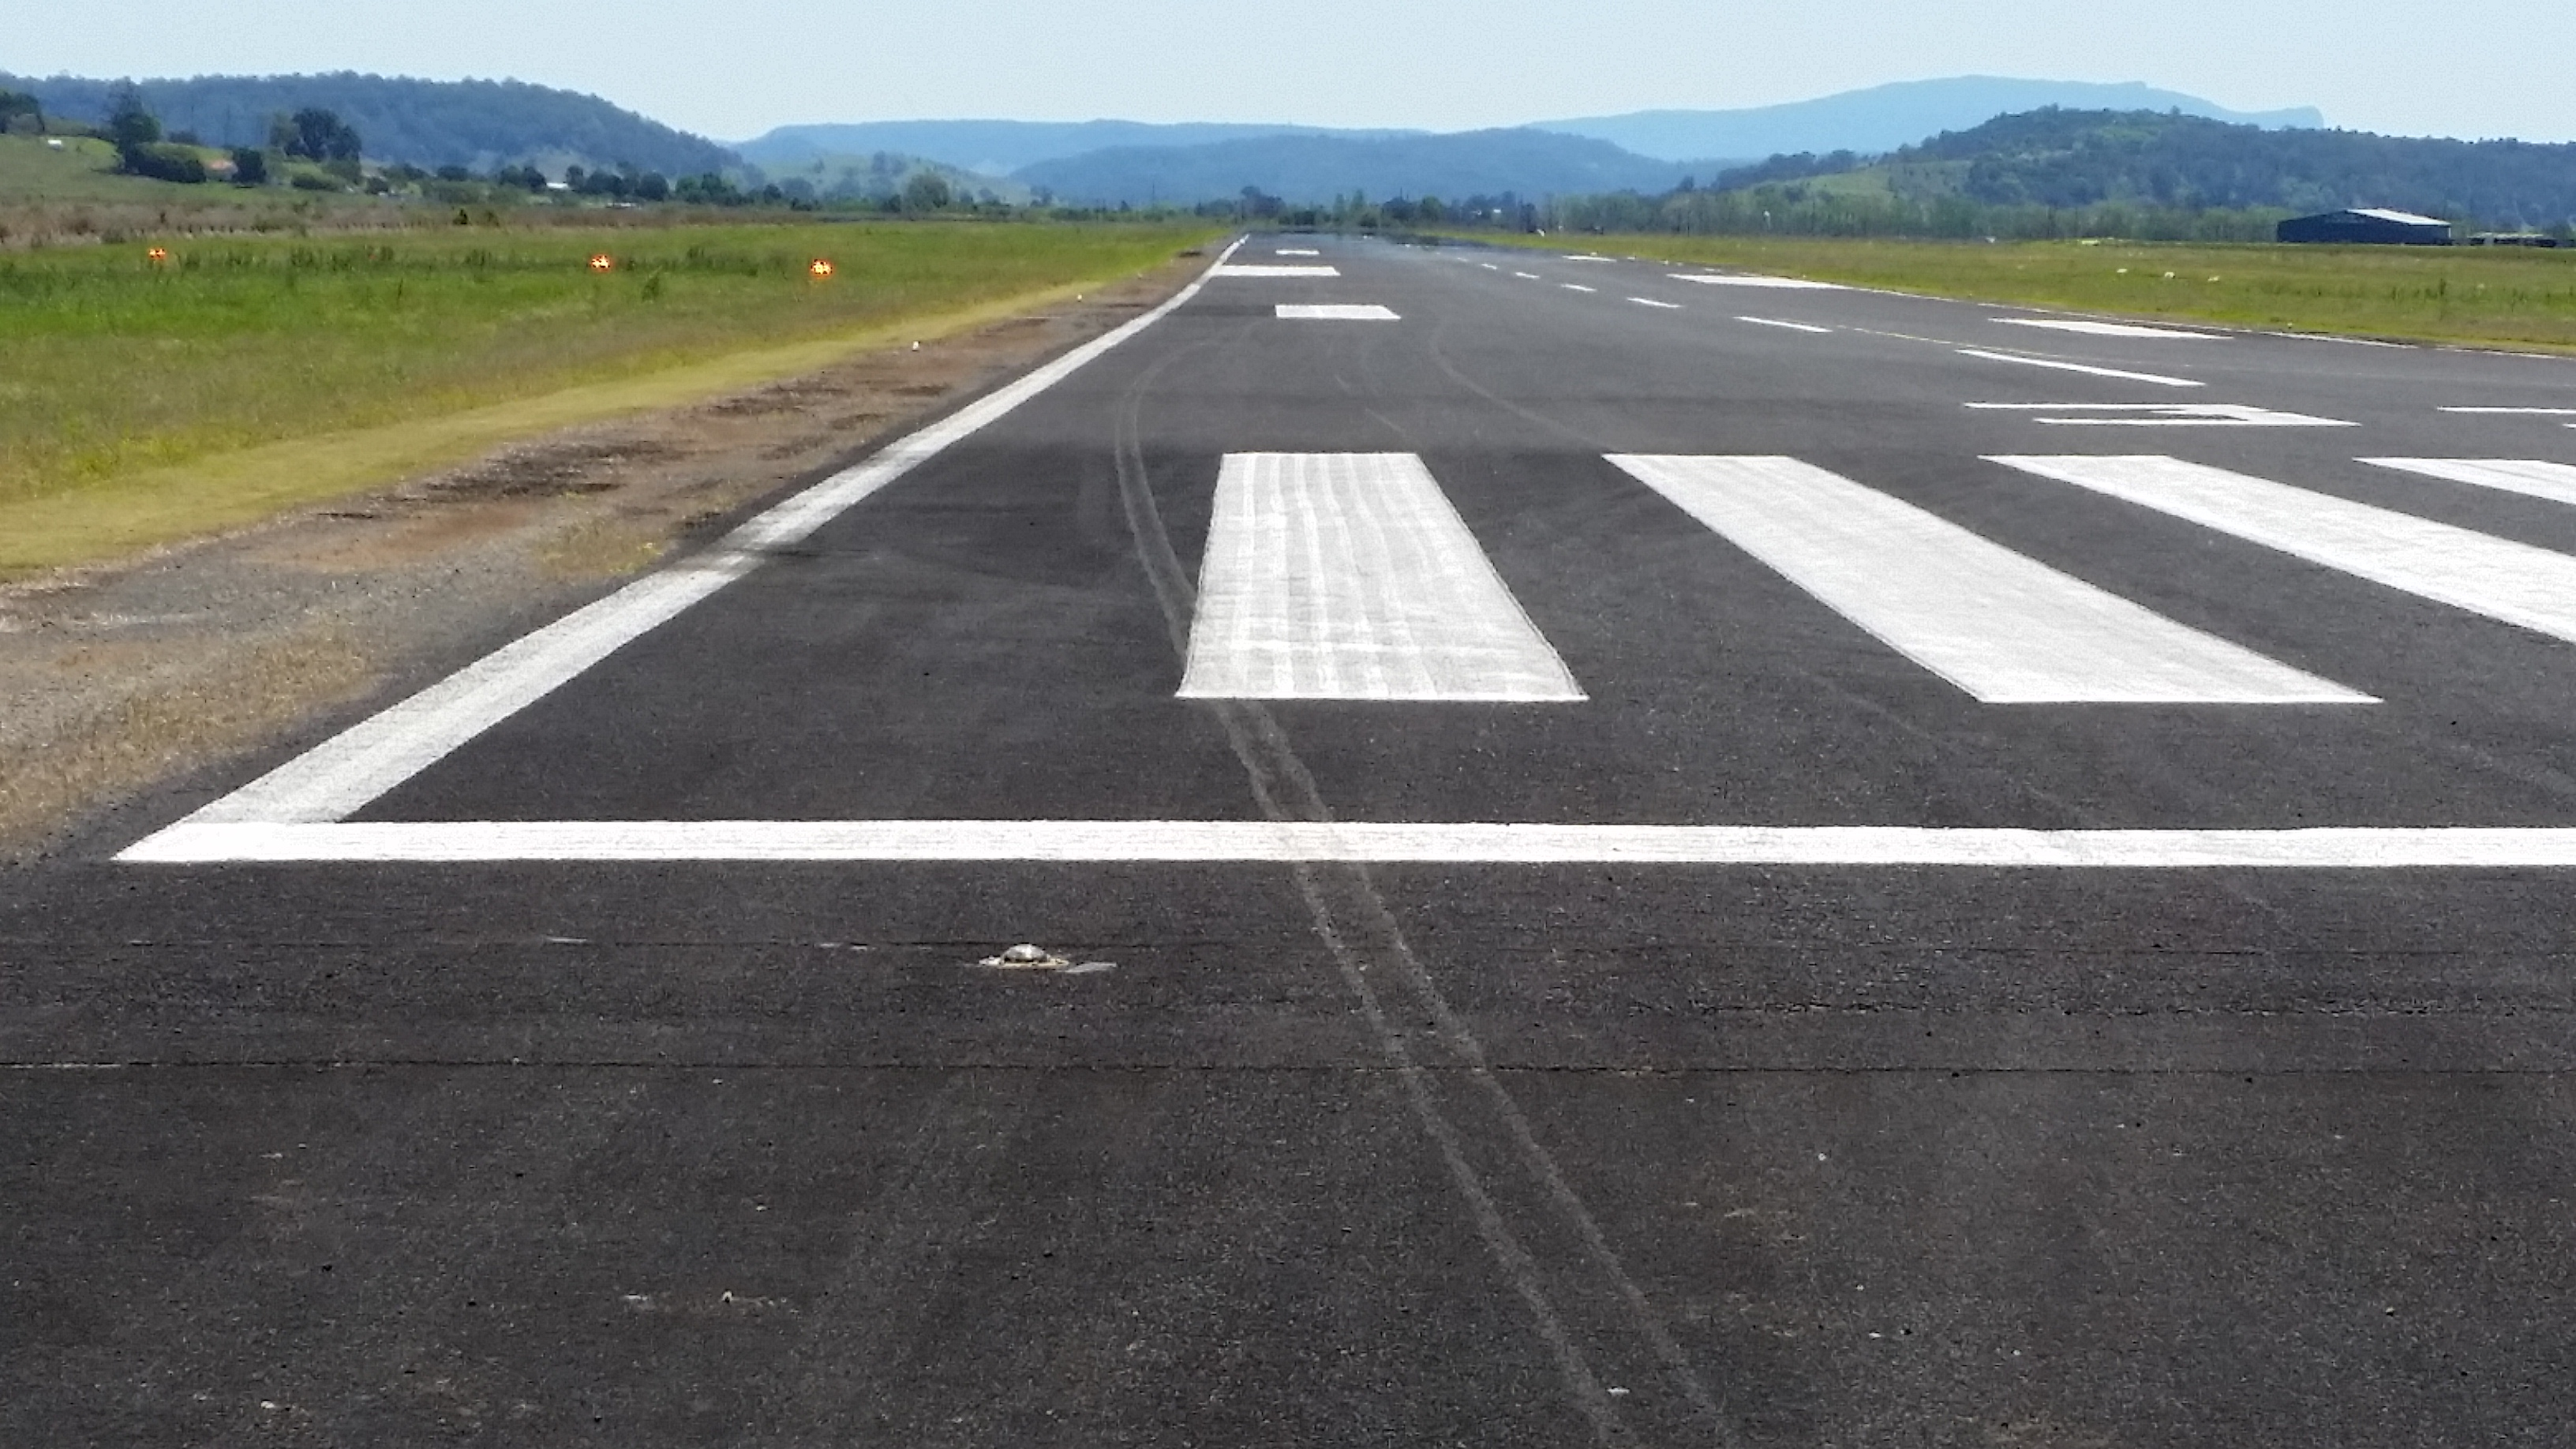 Figure 5: Southeast end of the runway showing right wheel contact marks on the runway and their position in relation to the runway centre line. Source: Aircraft owner